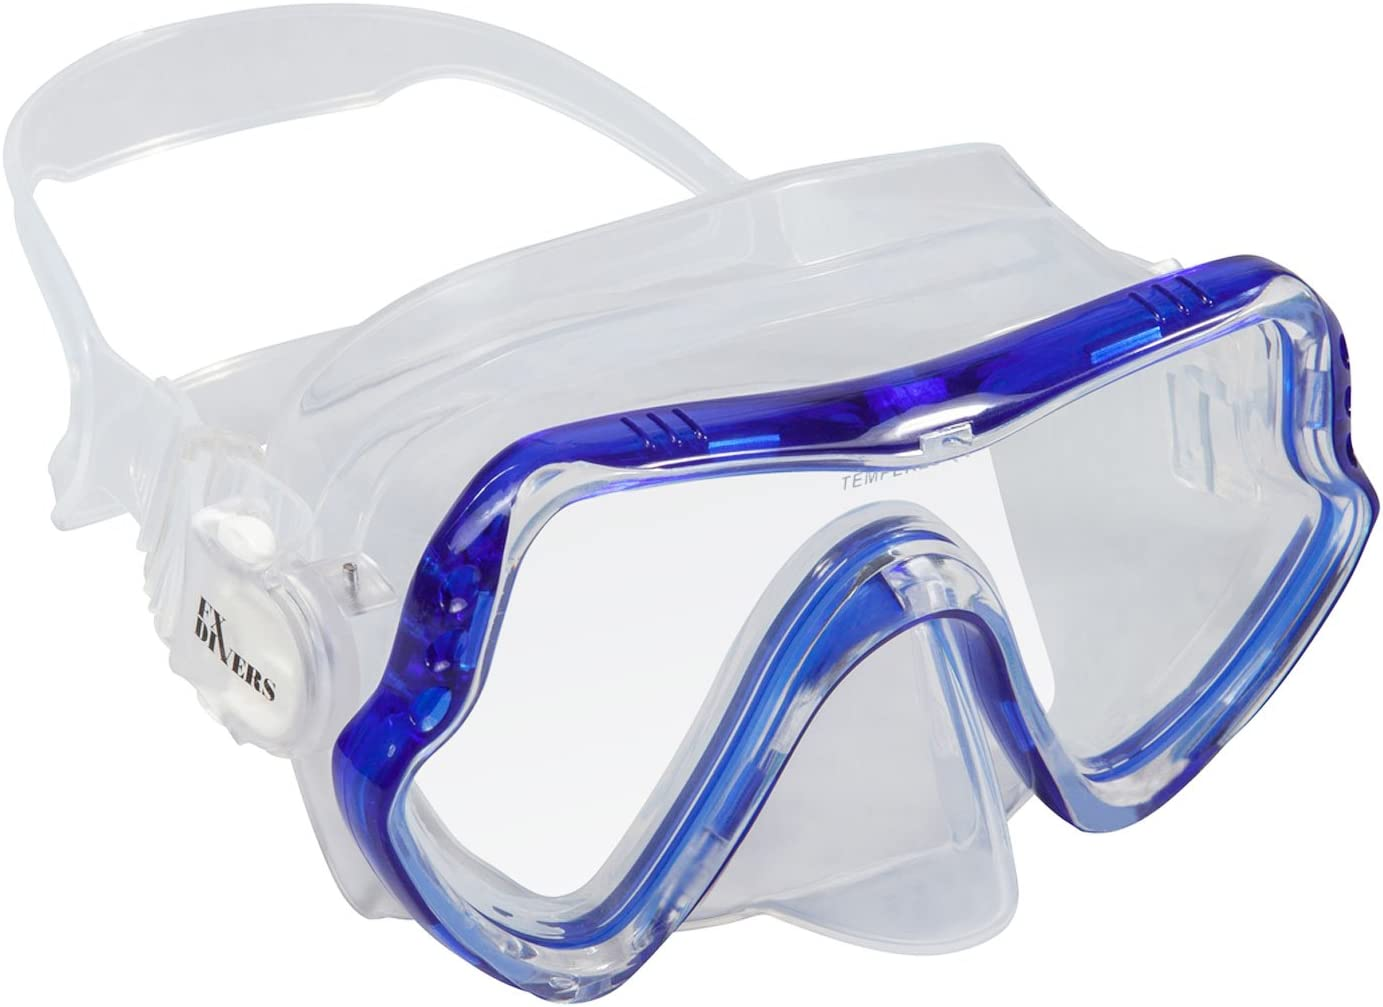 FX Divers Sea Scout Mask Dive specialty shop 1 year warranty Frameless